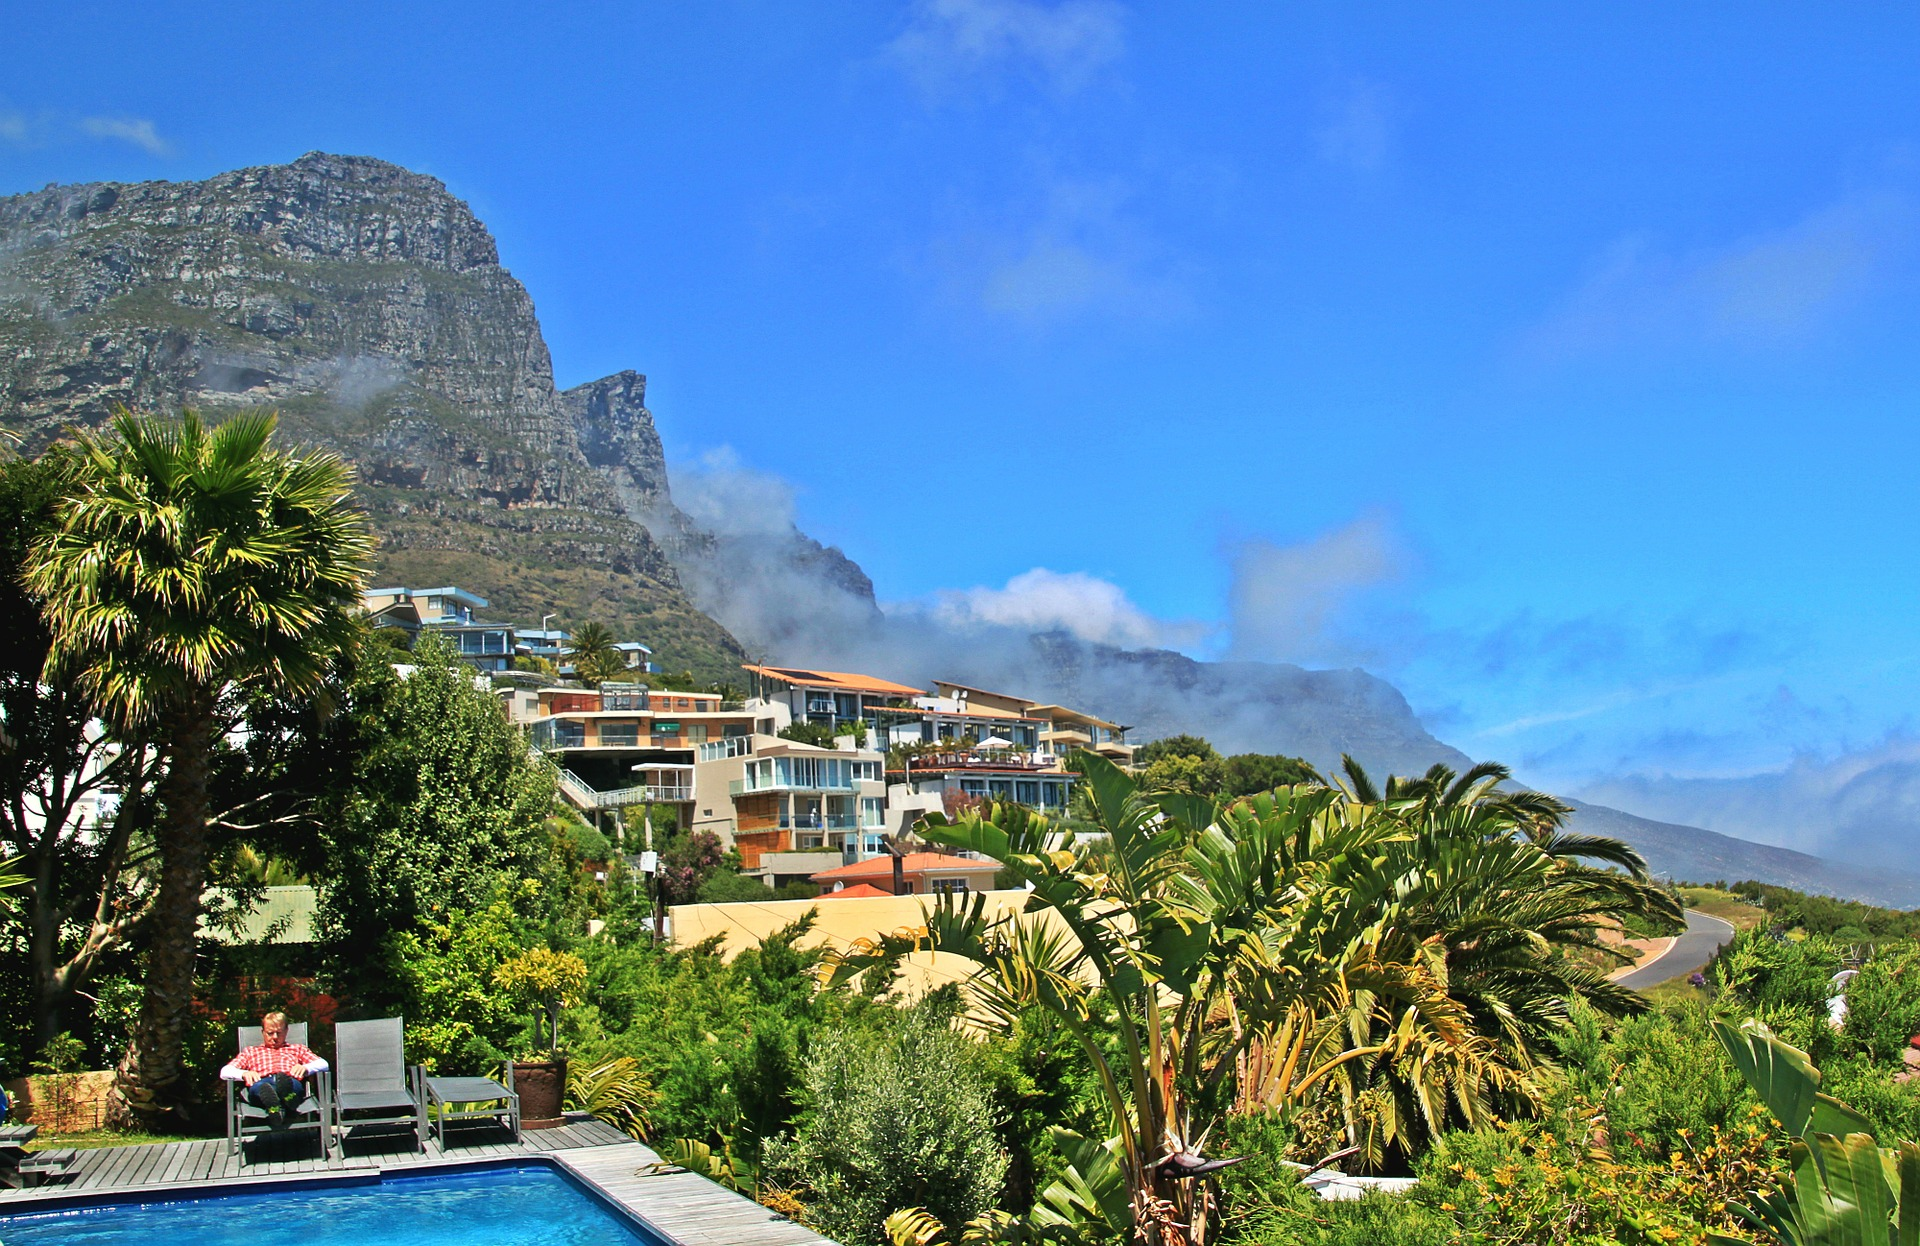 Camps Bay and Hatikvah